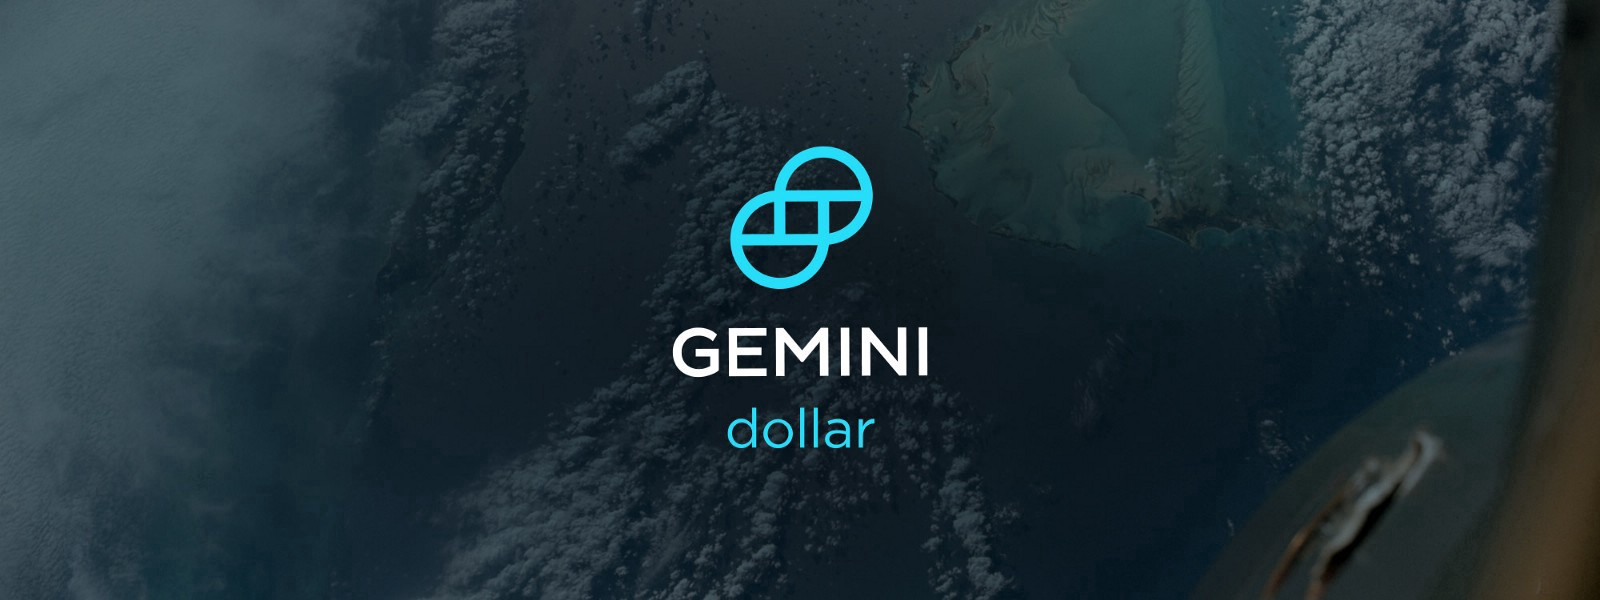 /the-gemini-dollar-a-real-use-case-9f1cd9e06f1e feature image